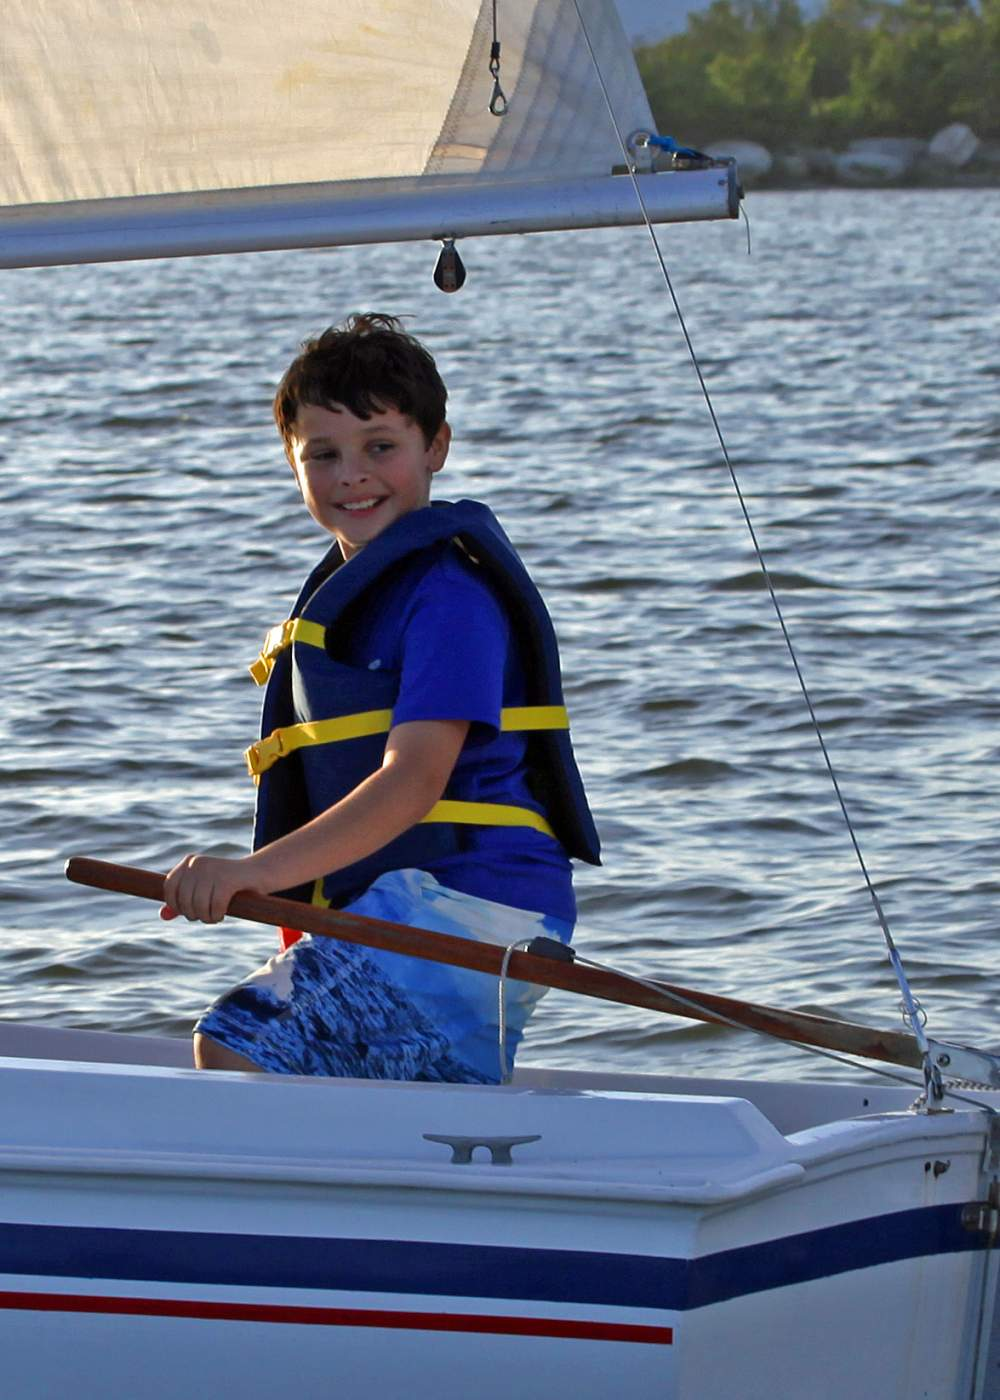 Young boy smiling while sailing